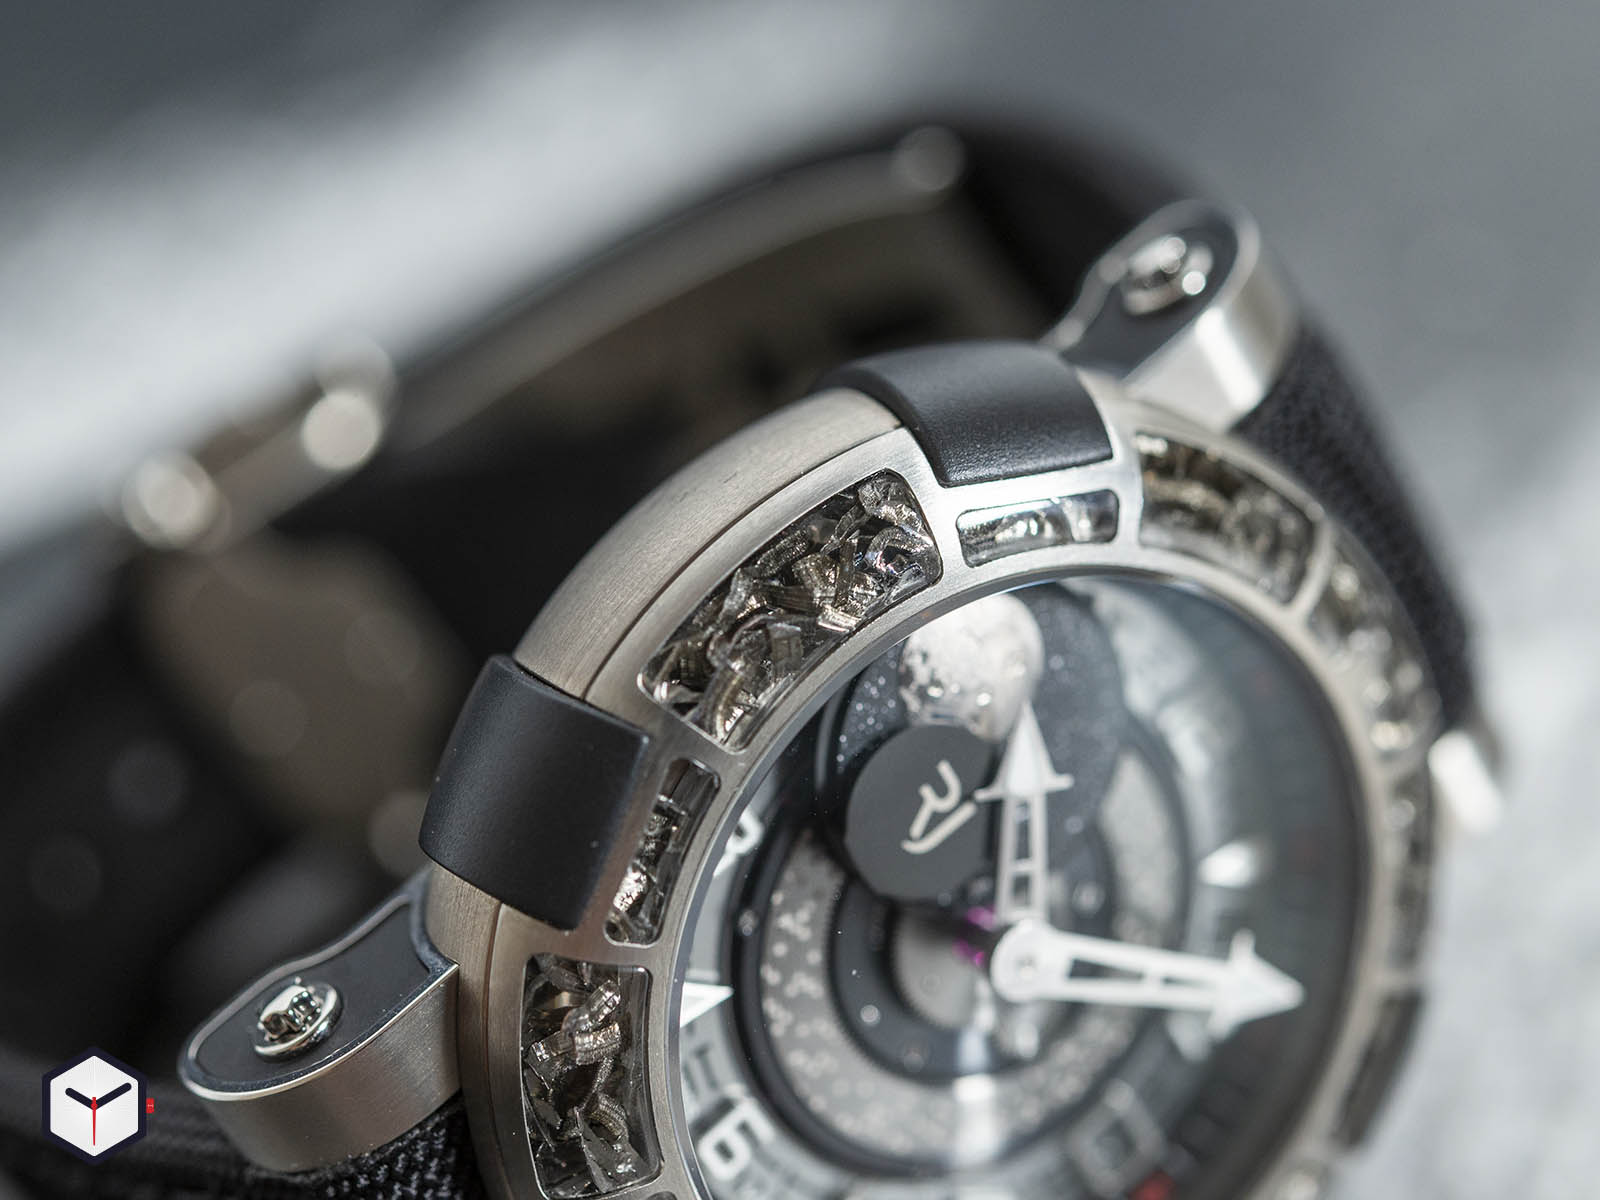 1s45l-tztr-8023-pr-asn19-romain-jerome-arraw-6919-space-titanium-sihh-2019-4.jpg